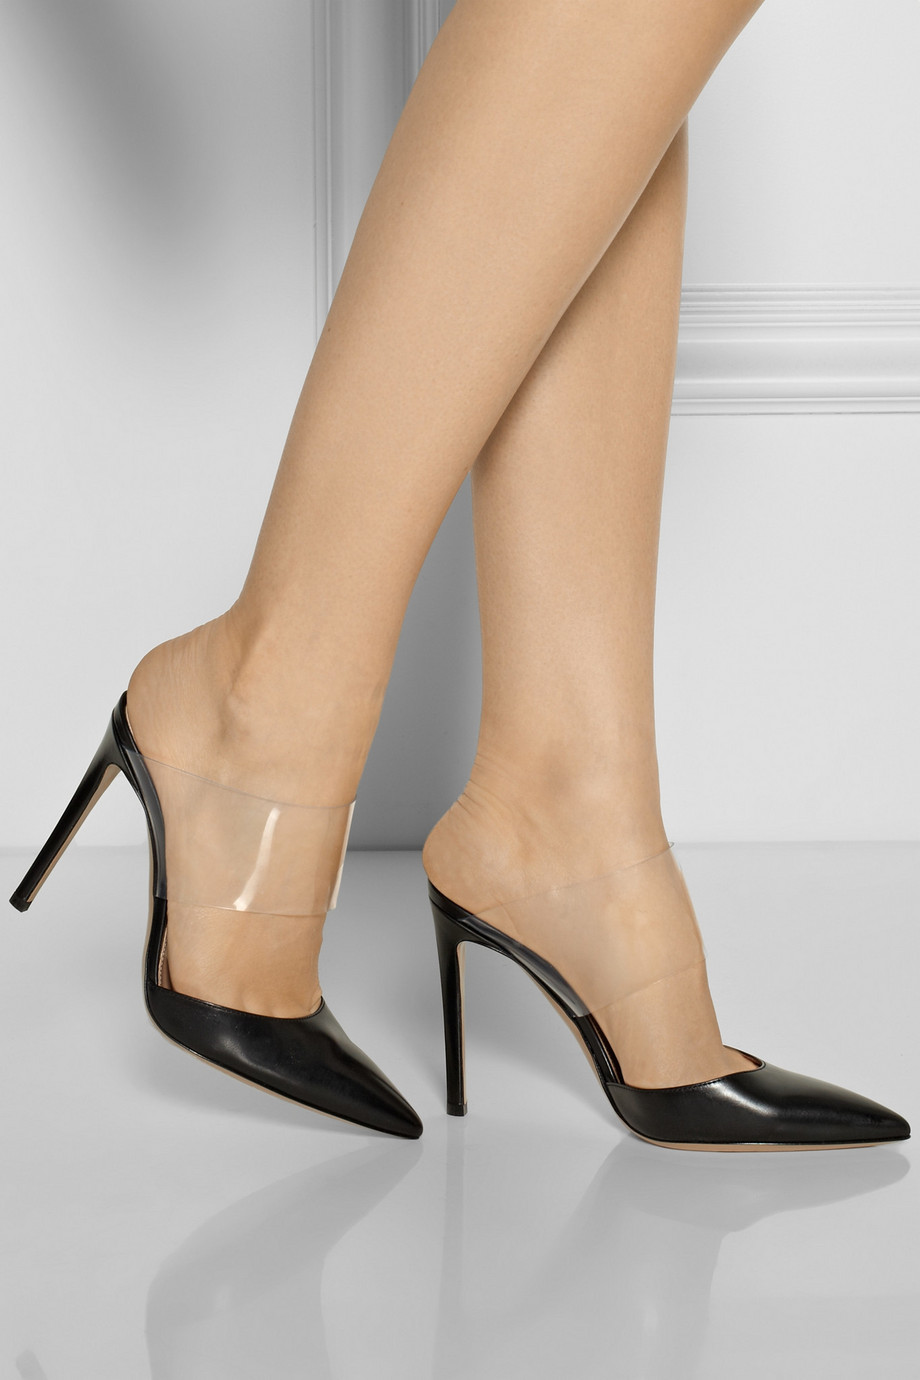 Are Heel Shoes Good For Back